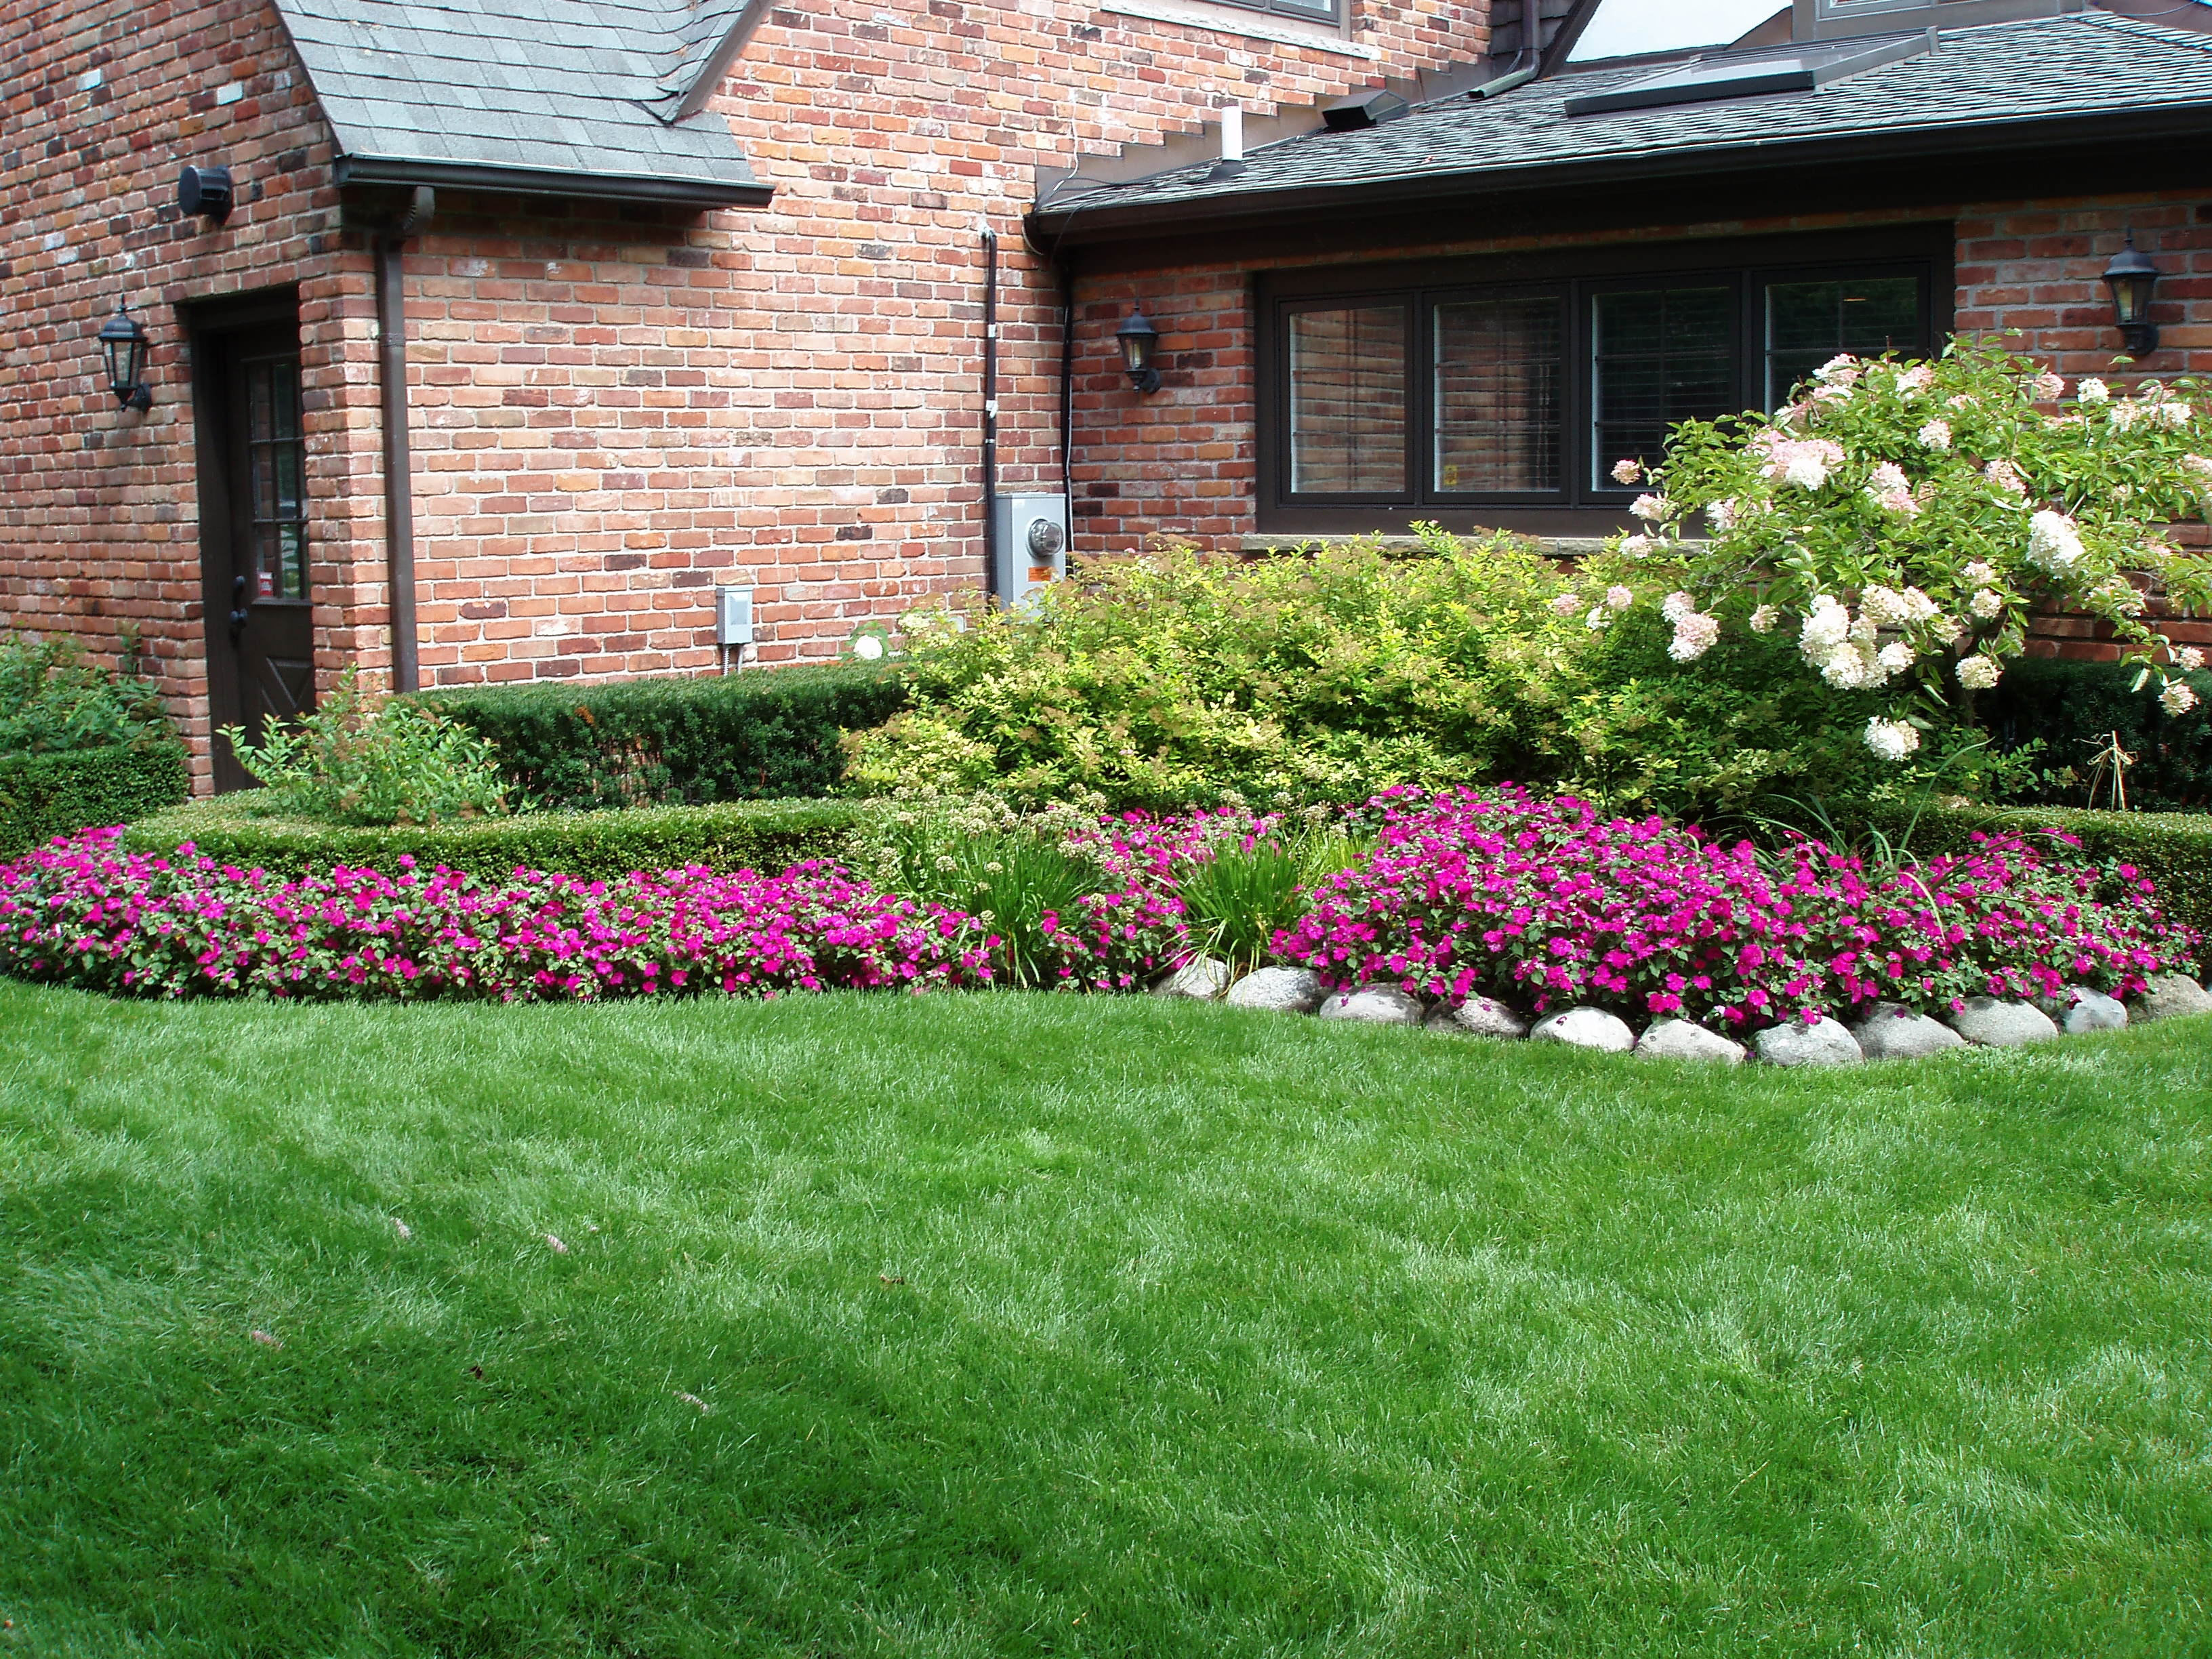 Perennials total lawn care inc full lawn maintenance for Landscape design pictures